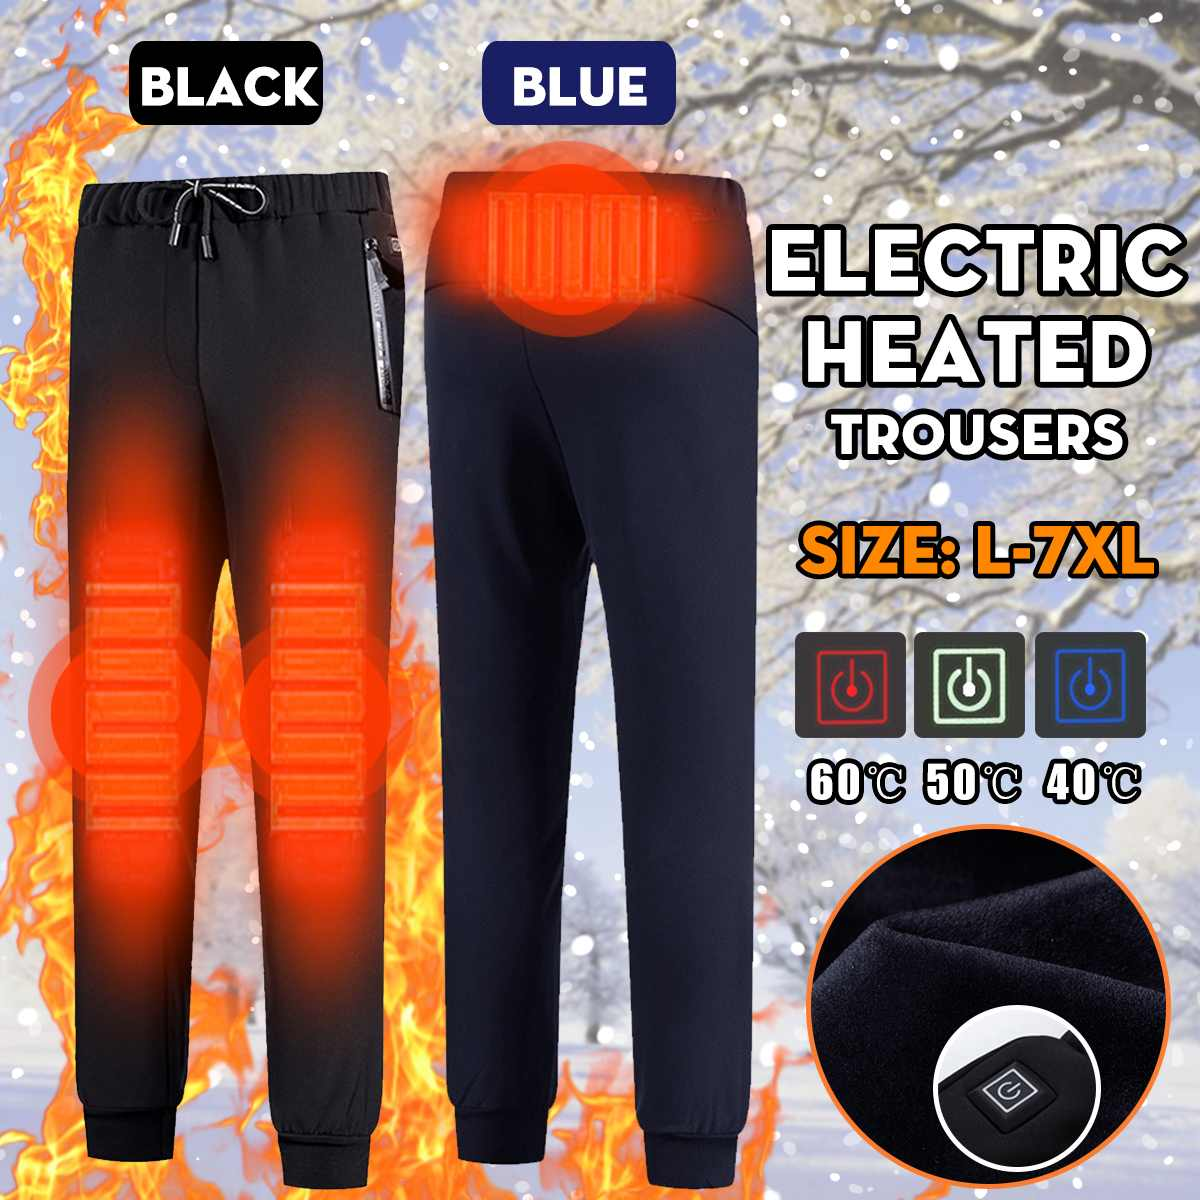 L-7XL Men Winter Heated Pants Outdoor Sports USB Electric Heated Warm Fleece Trousers For Trekking Camping Hiking Fishing